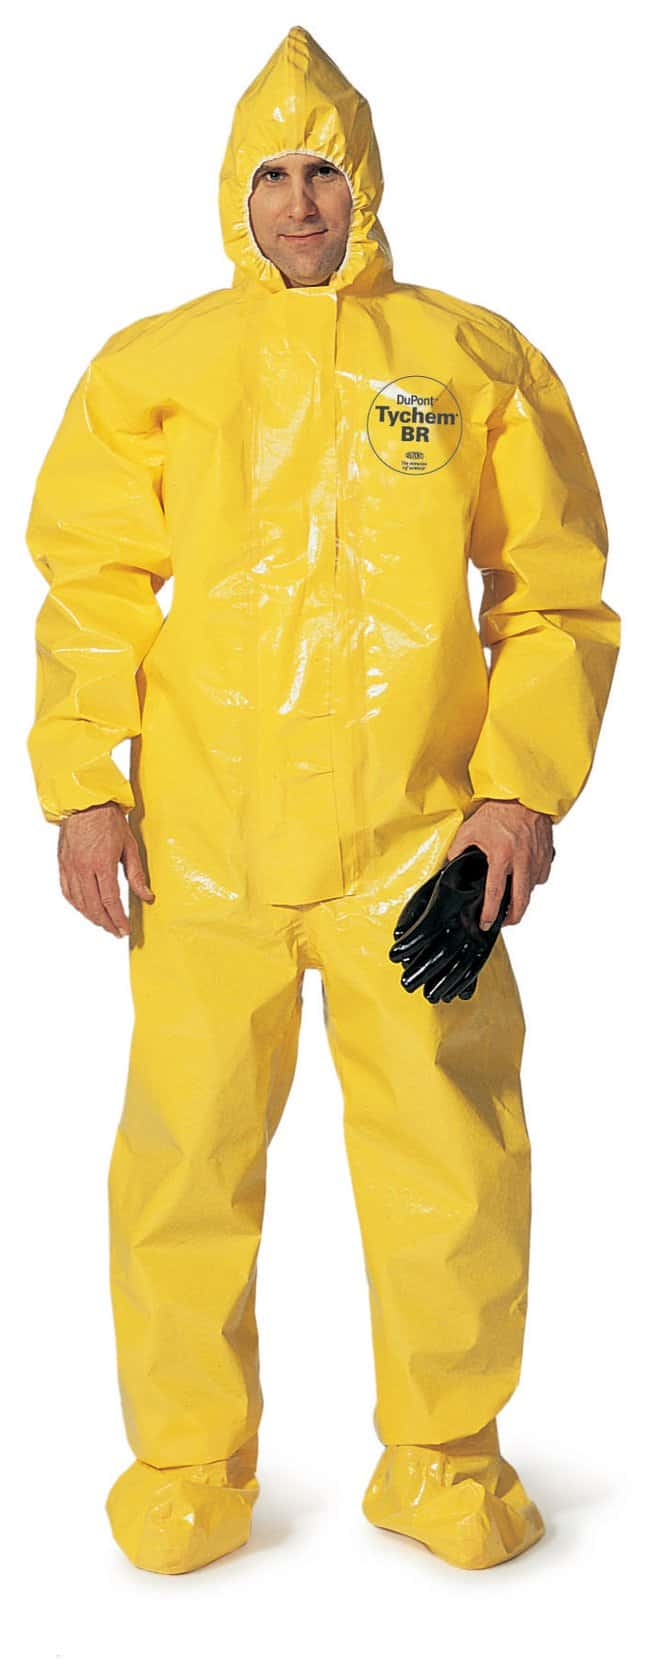 DuPont™ Tychem™ BR Encapsulated Suit